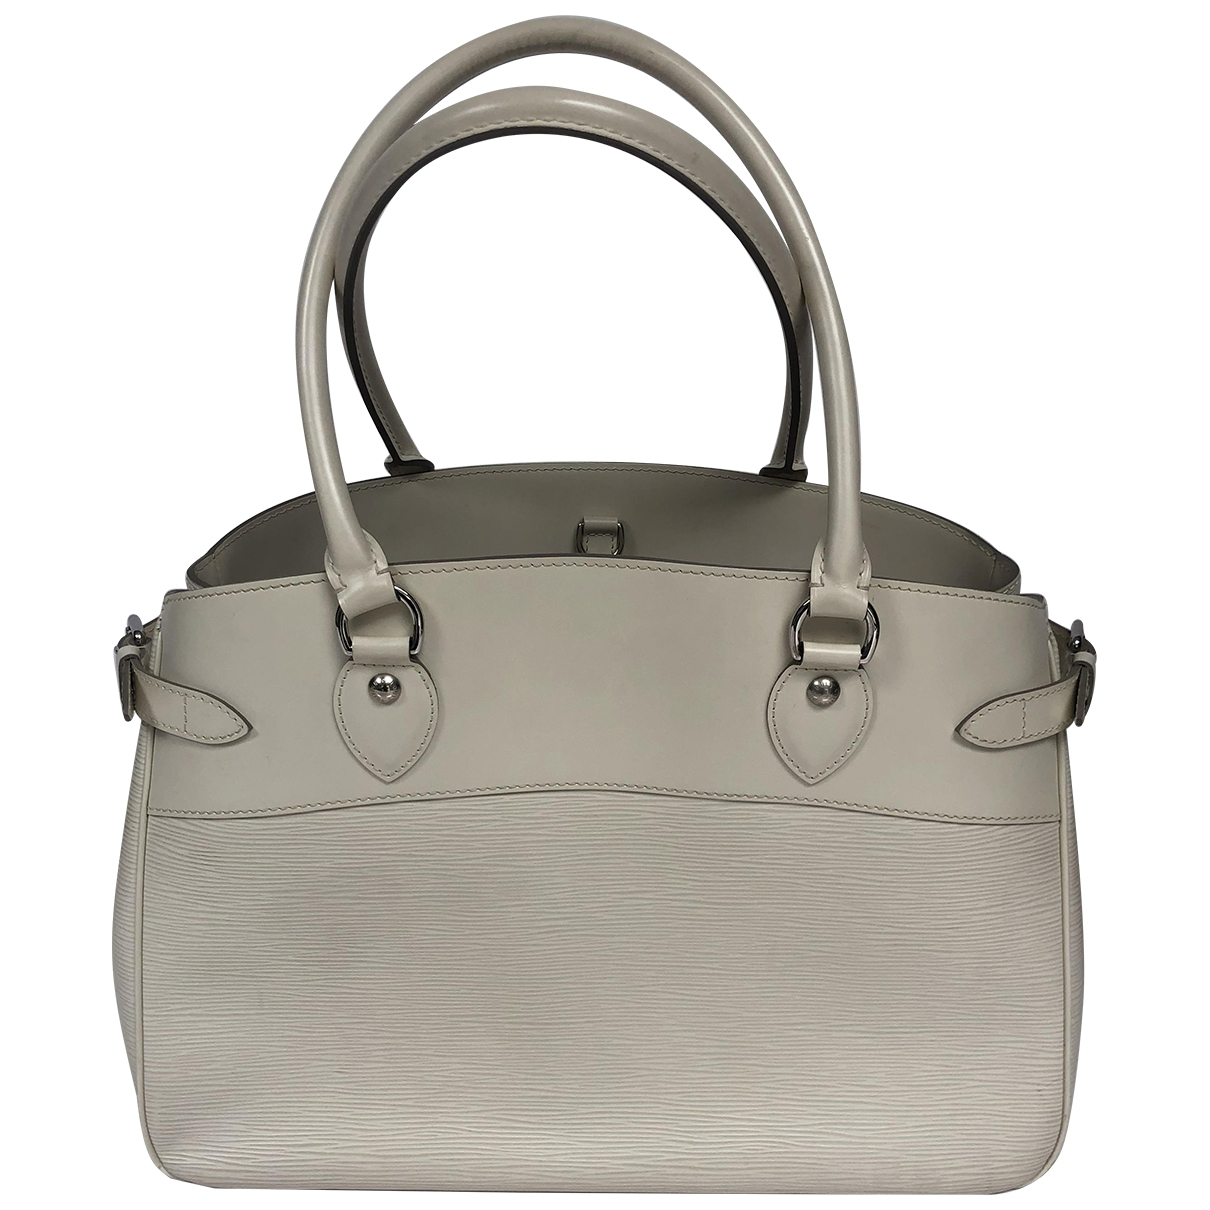 Louis Vuitton Passy Beige Leather handbag for Women \N